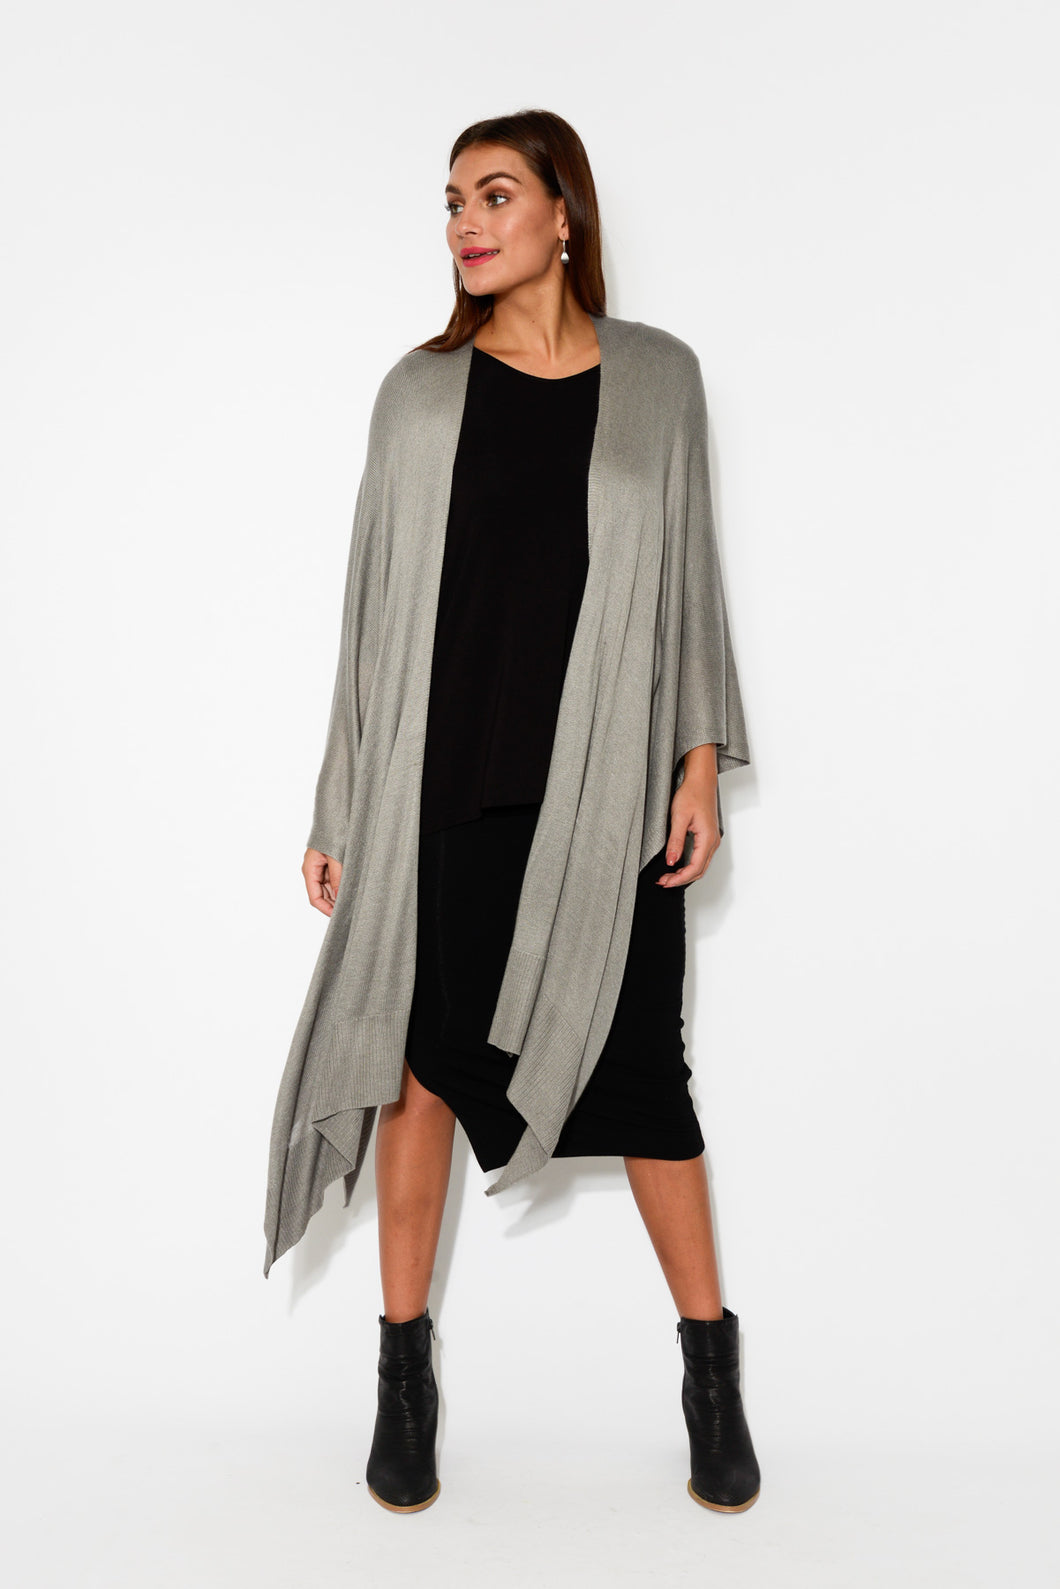 Sage Grey Bamboo Cashmere Knit Wrap - Blue Bungalow